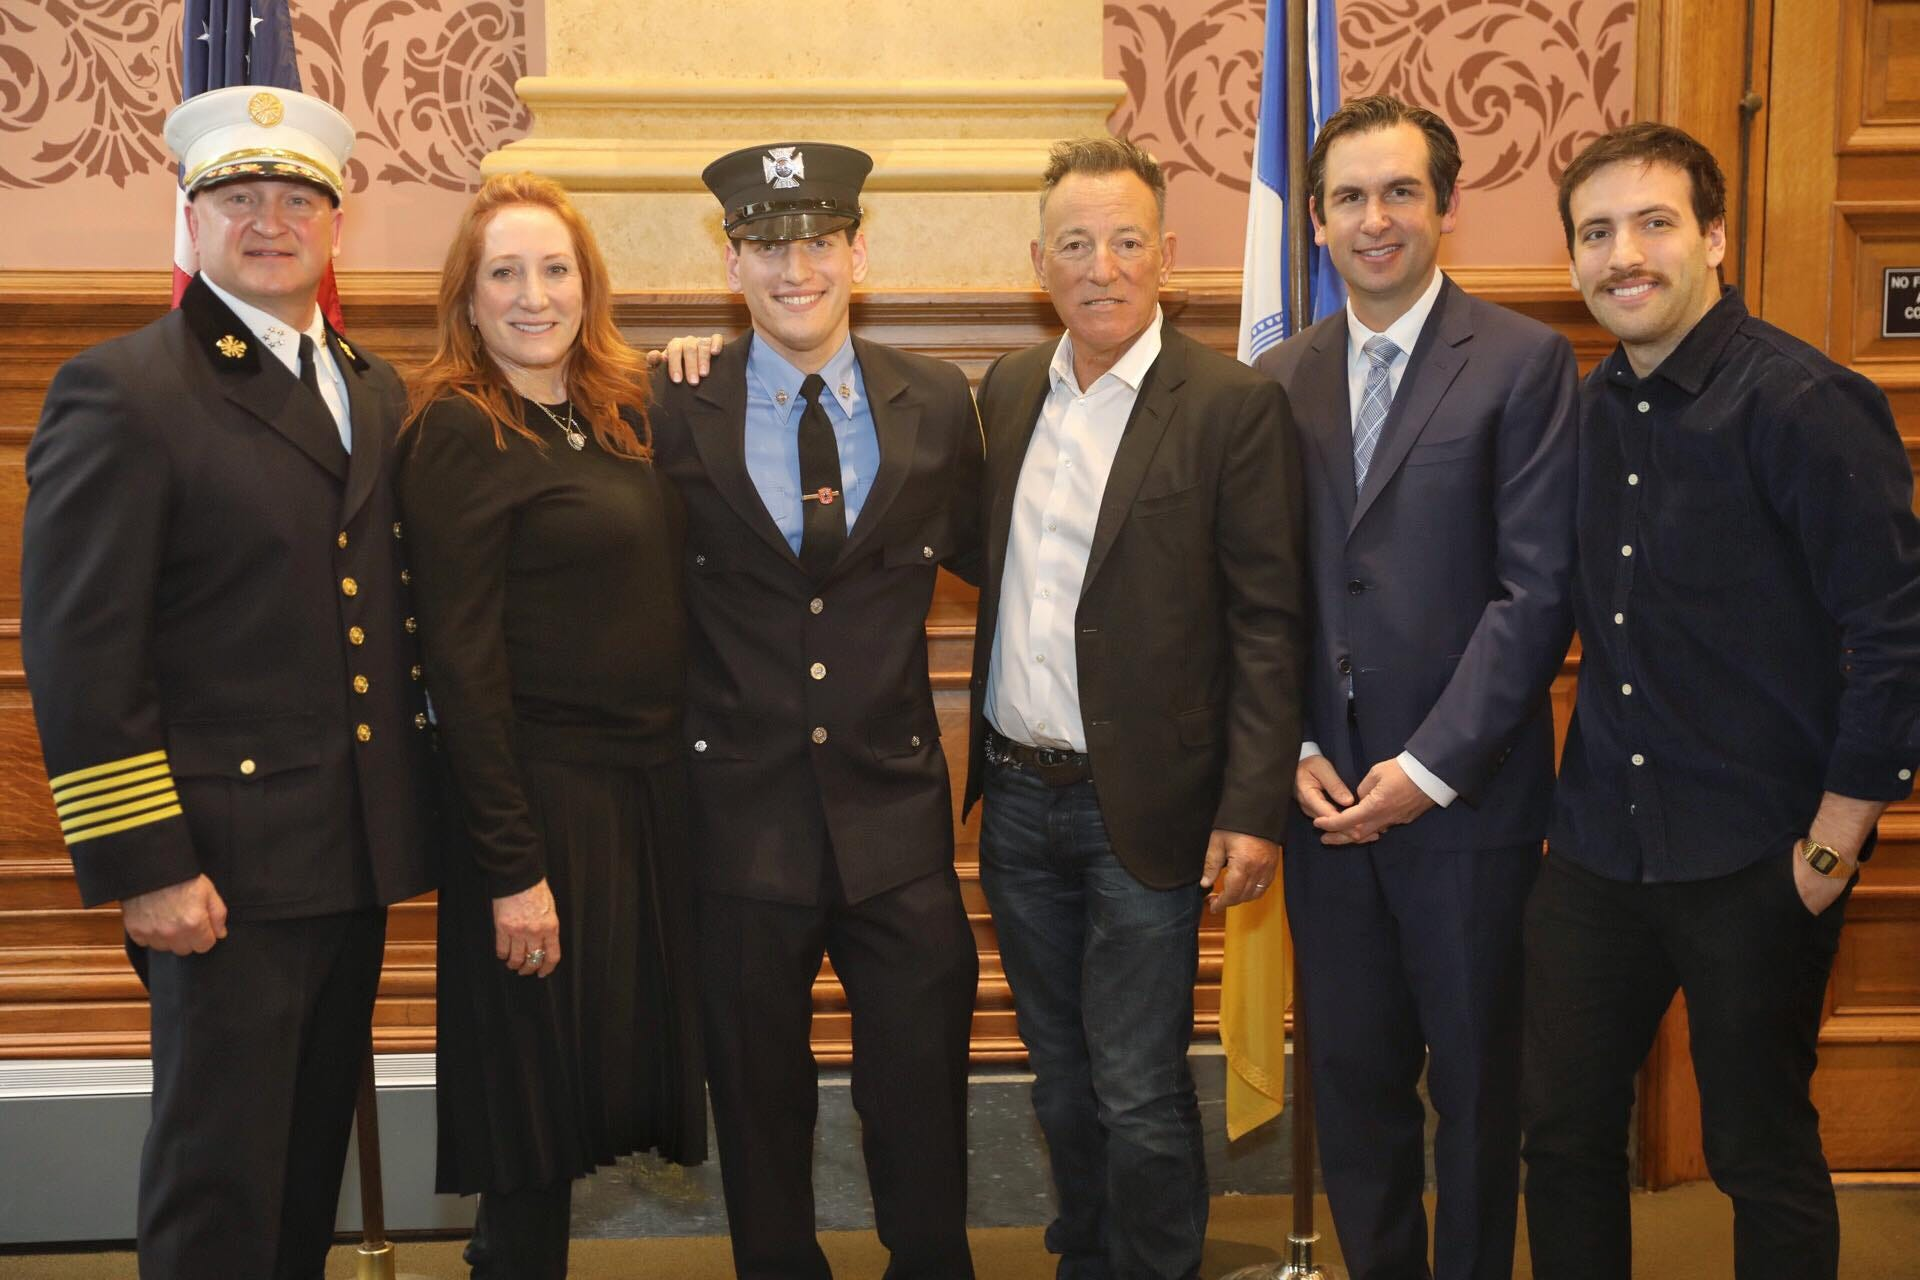 Bruce Springsteen looks on as son Sam becomes a Jersey City firefighter